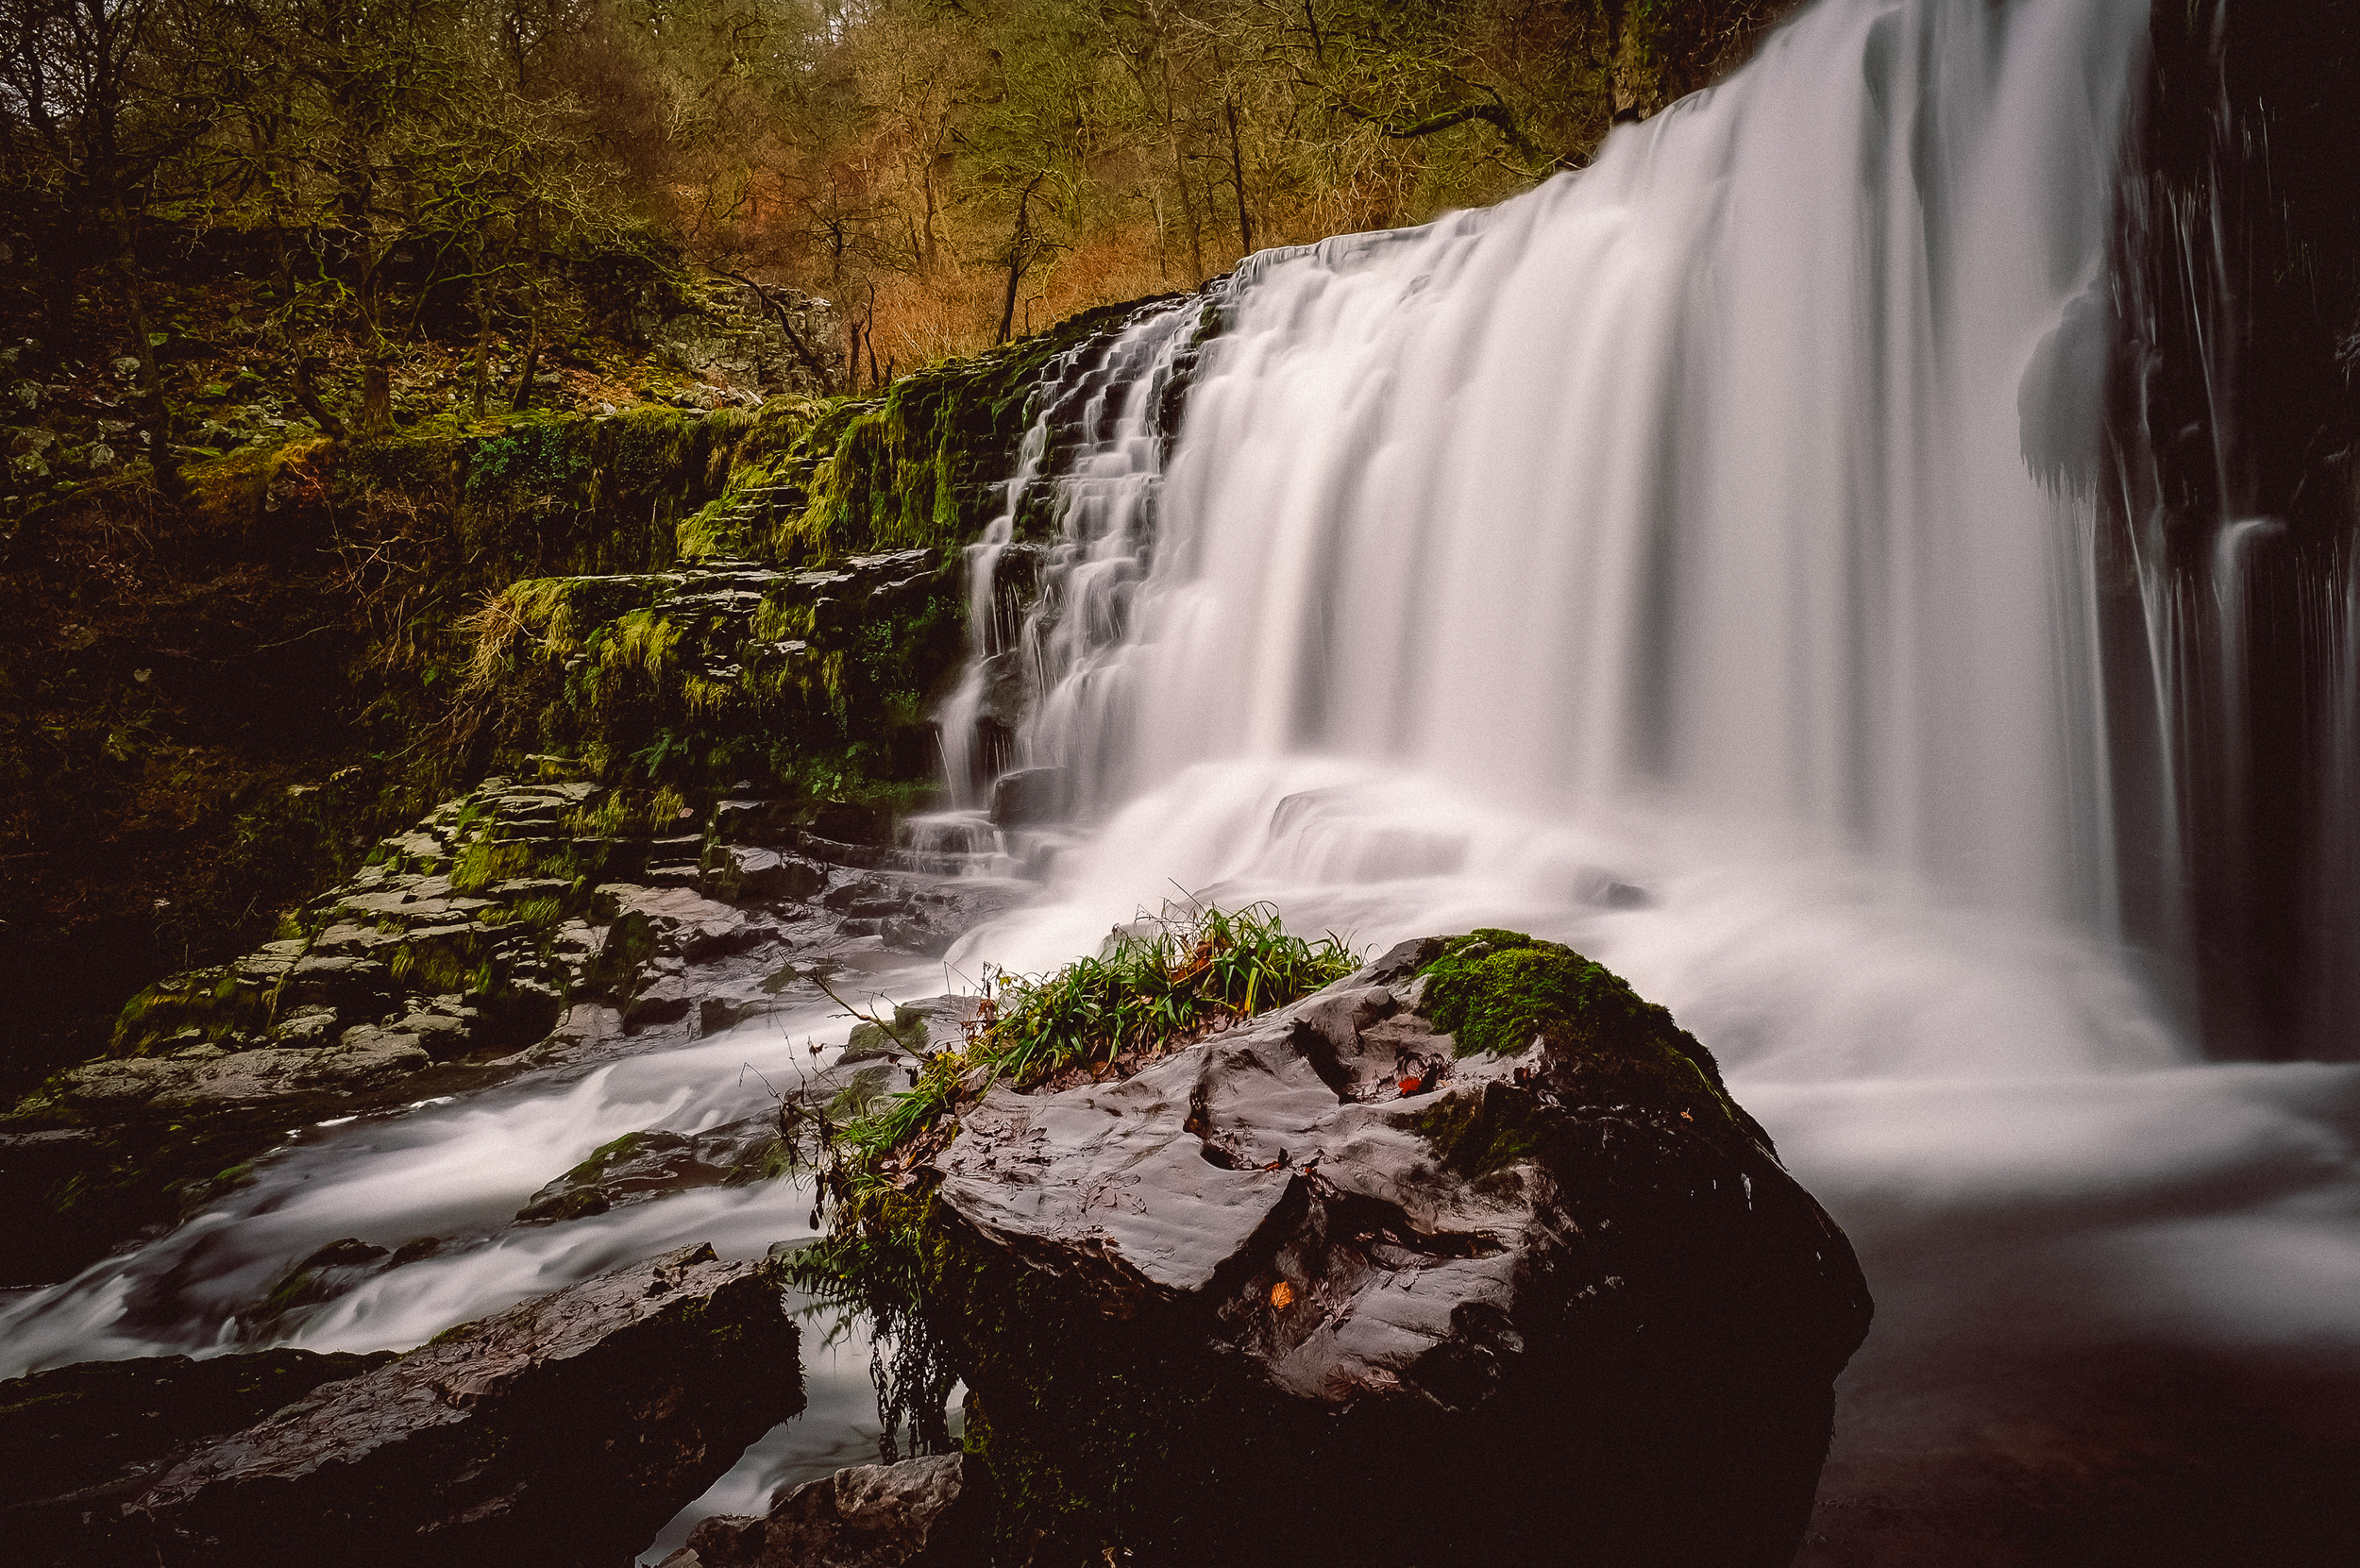 Waterfall walk, Ystradfellte, Wales.  Fuji X100 | F8 - 26sec -iso200 [+10 stop ND filter]